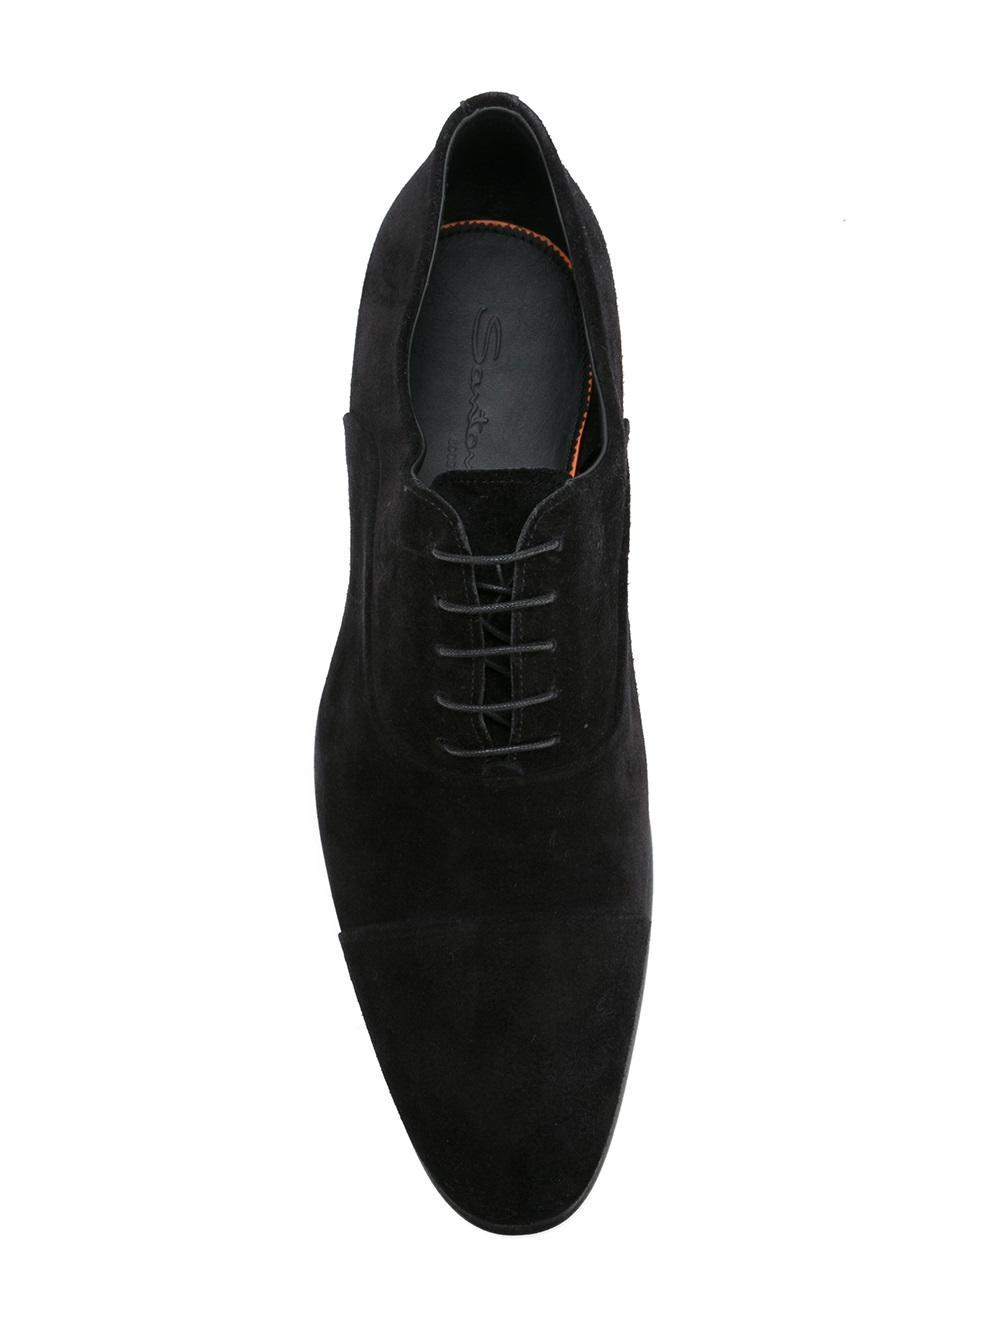 Santoni Suede Goodyear Sole Oxford Shoes in Black for Men